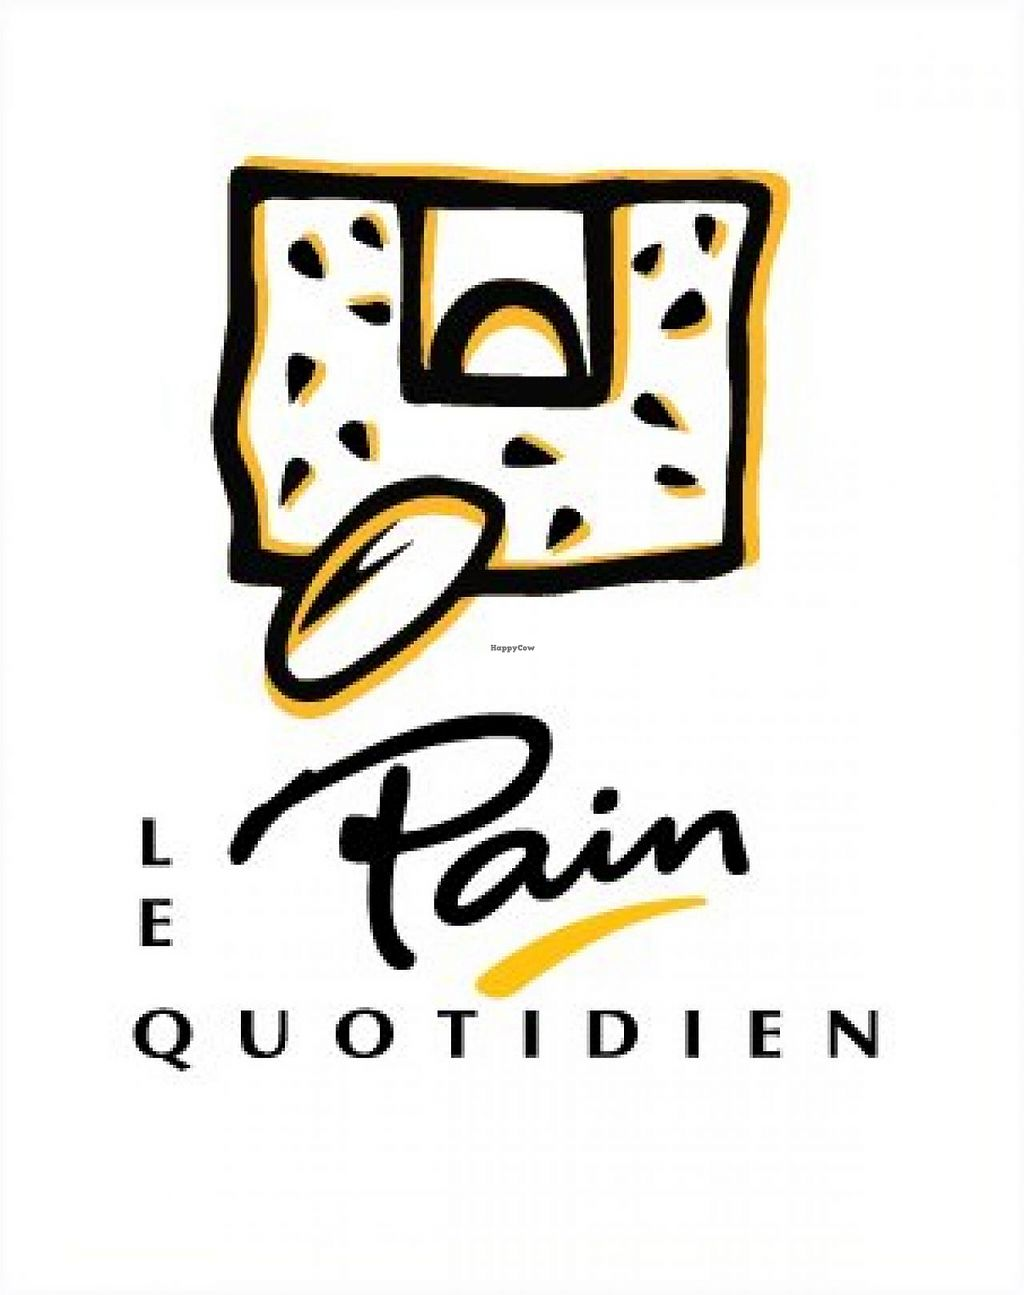 """Photo of Le Pain Quotidien  by <a href=""""/members/profile/community"""">community</a> <br/>Le Pain Quotidien <br/> July 21, 2014  - <a href='/contact/abuse/image/49110/74639'>Report</a>"""